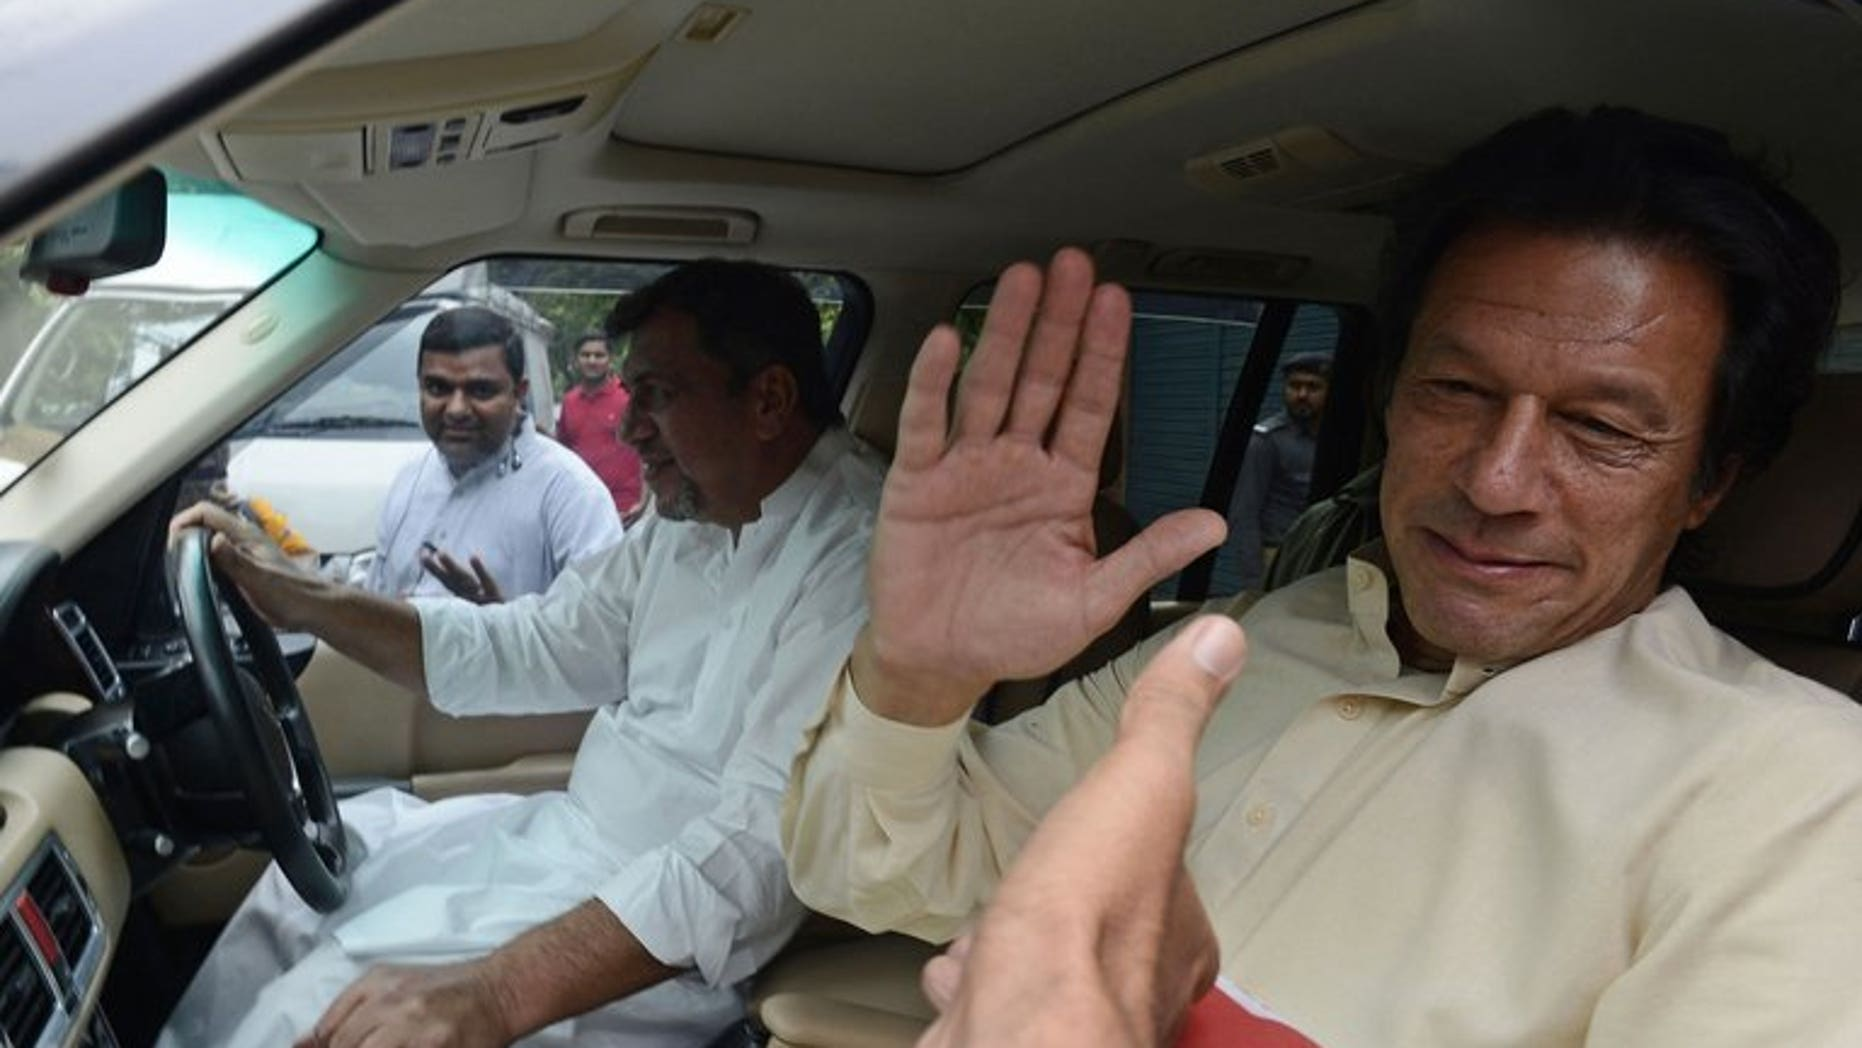 """Pakistan Tehreek-e-Insaf (PTI) chairman Imran Khan greets supporters in Lahore on June 13, 2013. Pakistan's top court on Wednesday summoned cricketer-turned-politician Khan for a contempt hearing over his """"critical and derogatory"""" remarks against the judiciary, a statement said."""